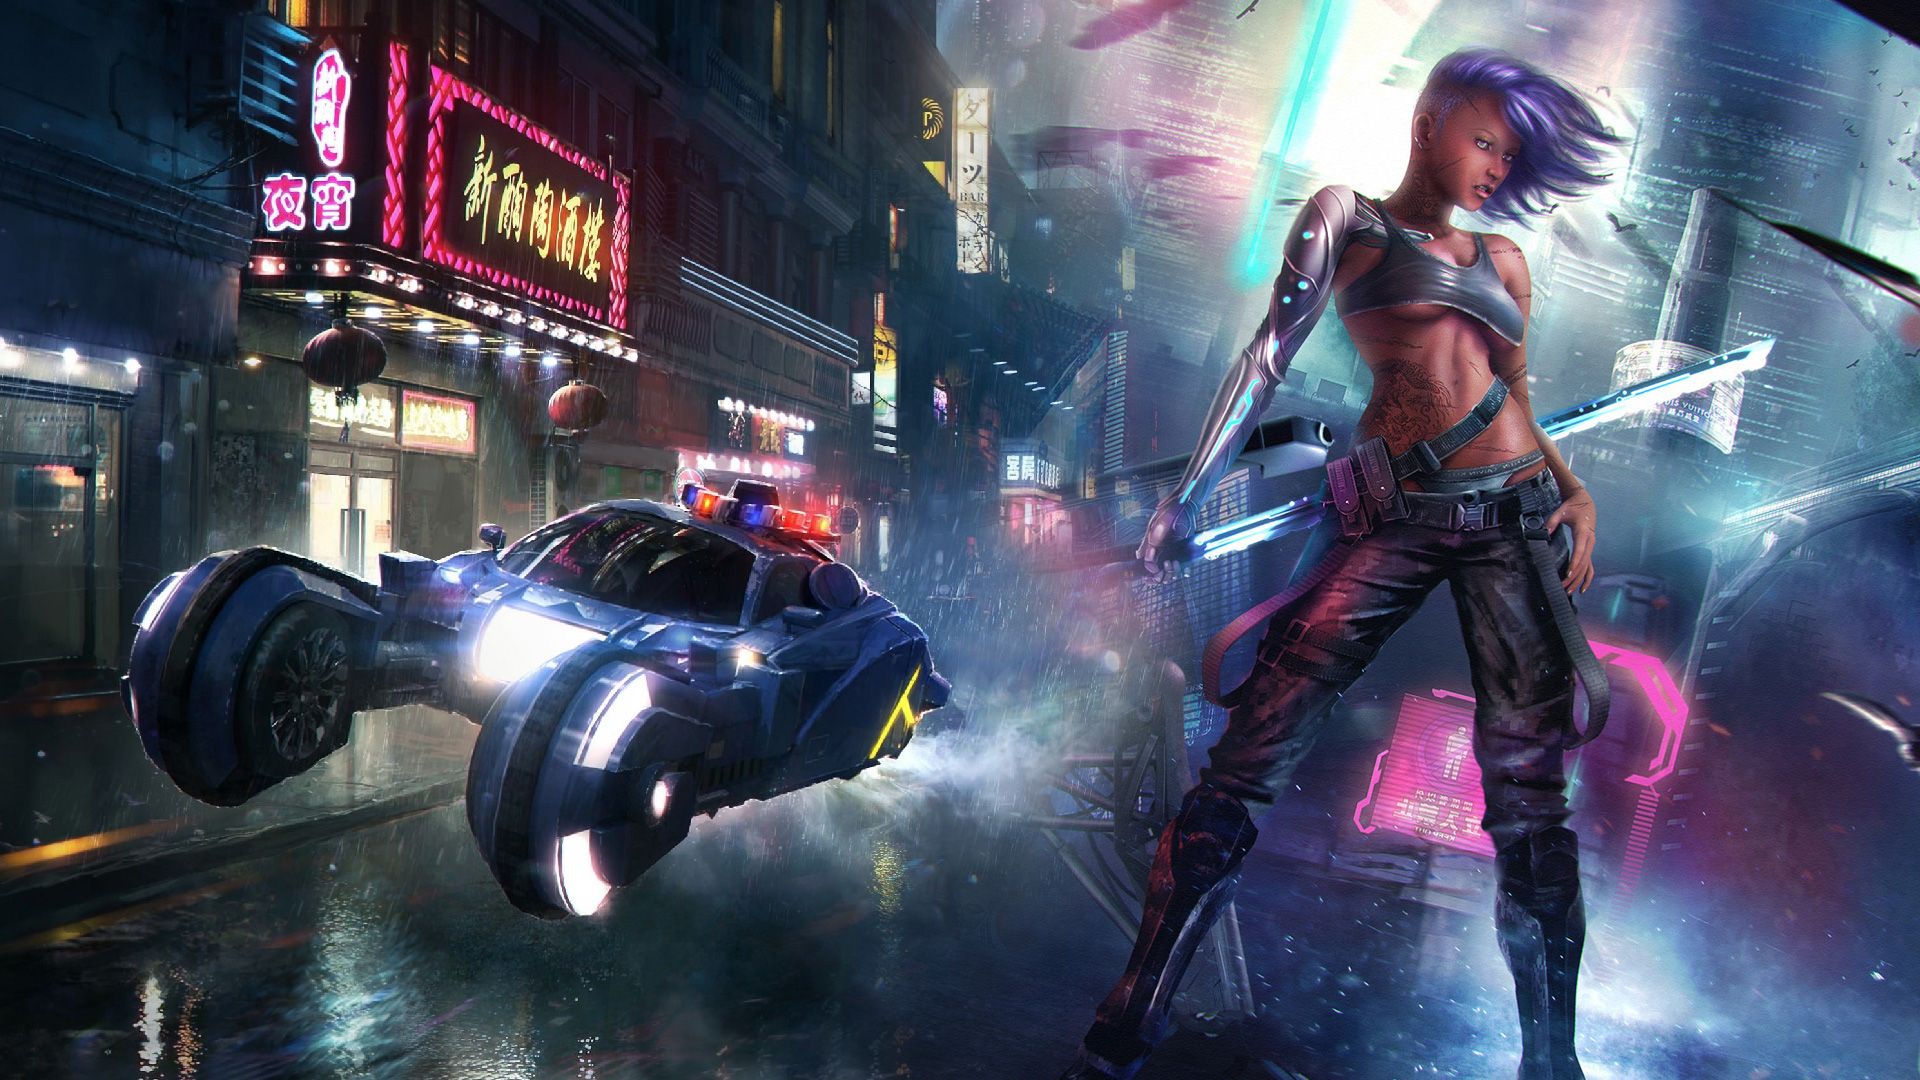 Cartoon Girl Wallpaper Cyberpunk 2077 May Or May Not Be Shown At This Year S E3